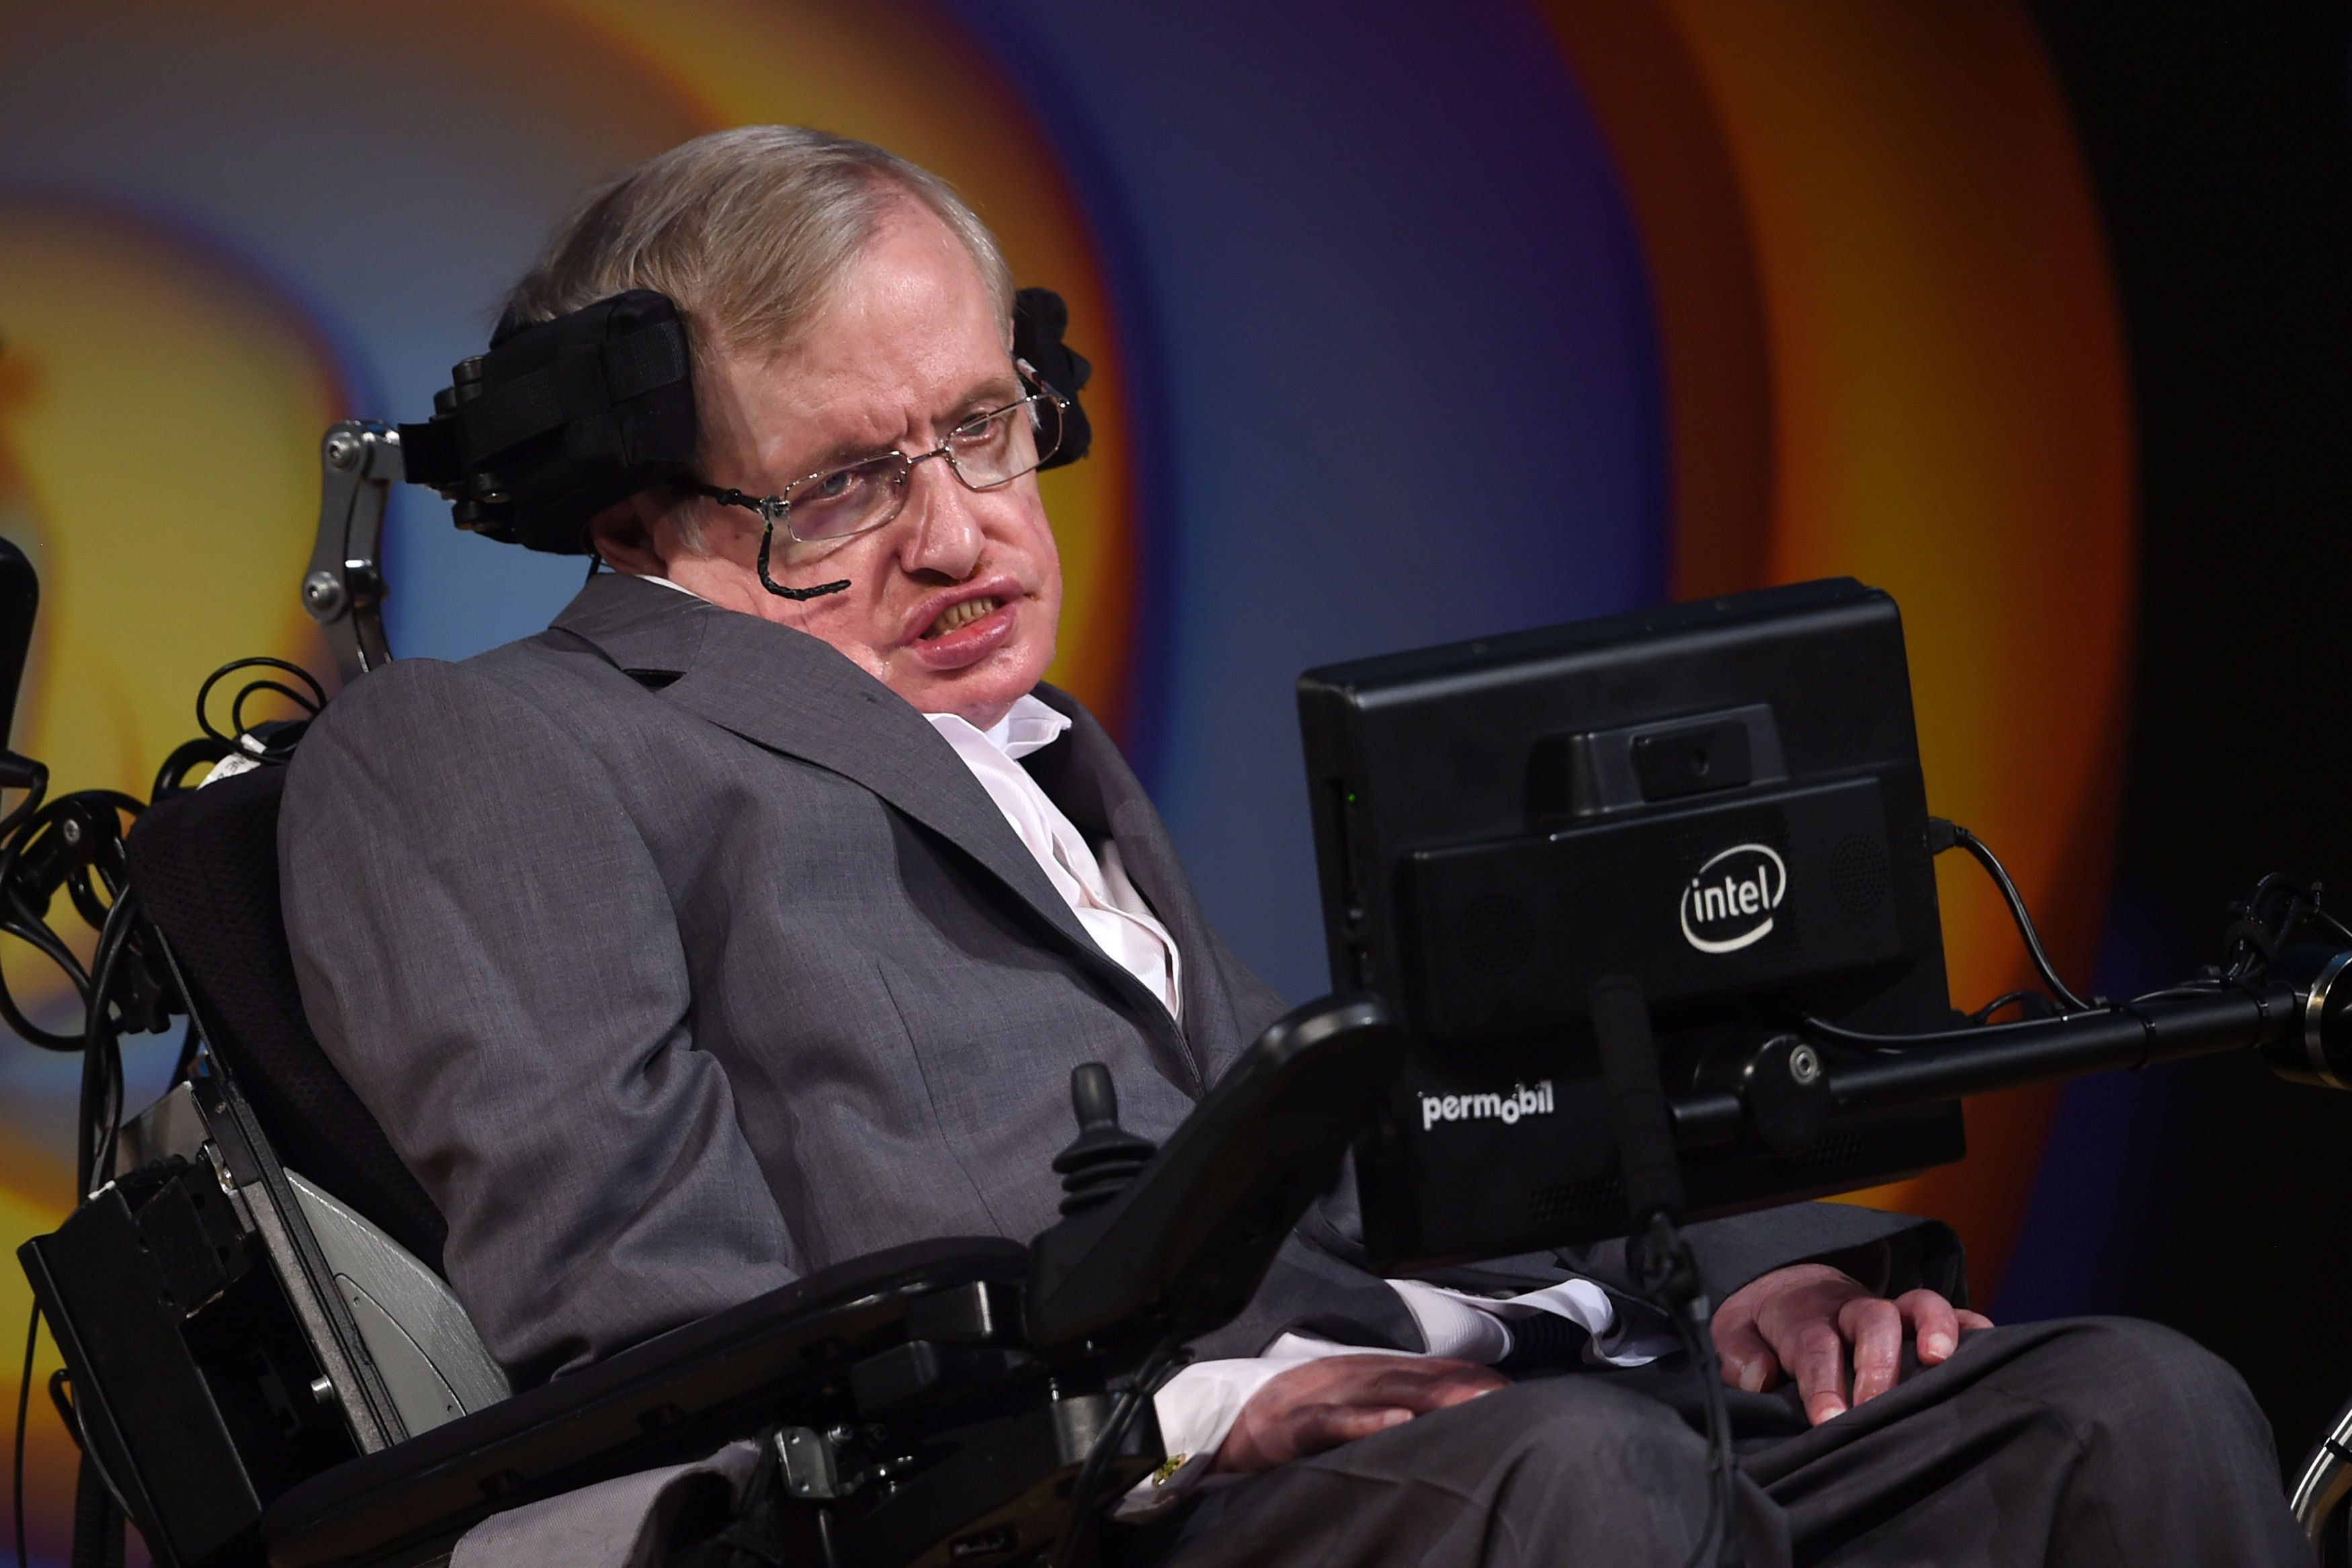 Stephen Hawking talks about his life and work during a public symposium to celebrate his 75th birthday at Lady Mitchell Hall in Cambridge. (Photo by Joe Giddens/PA Images via Getty Images)